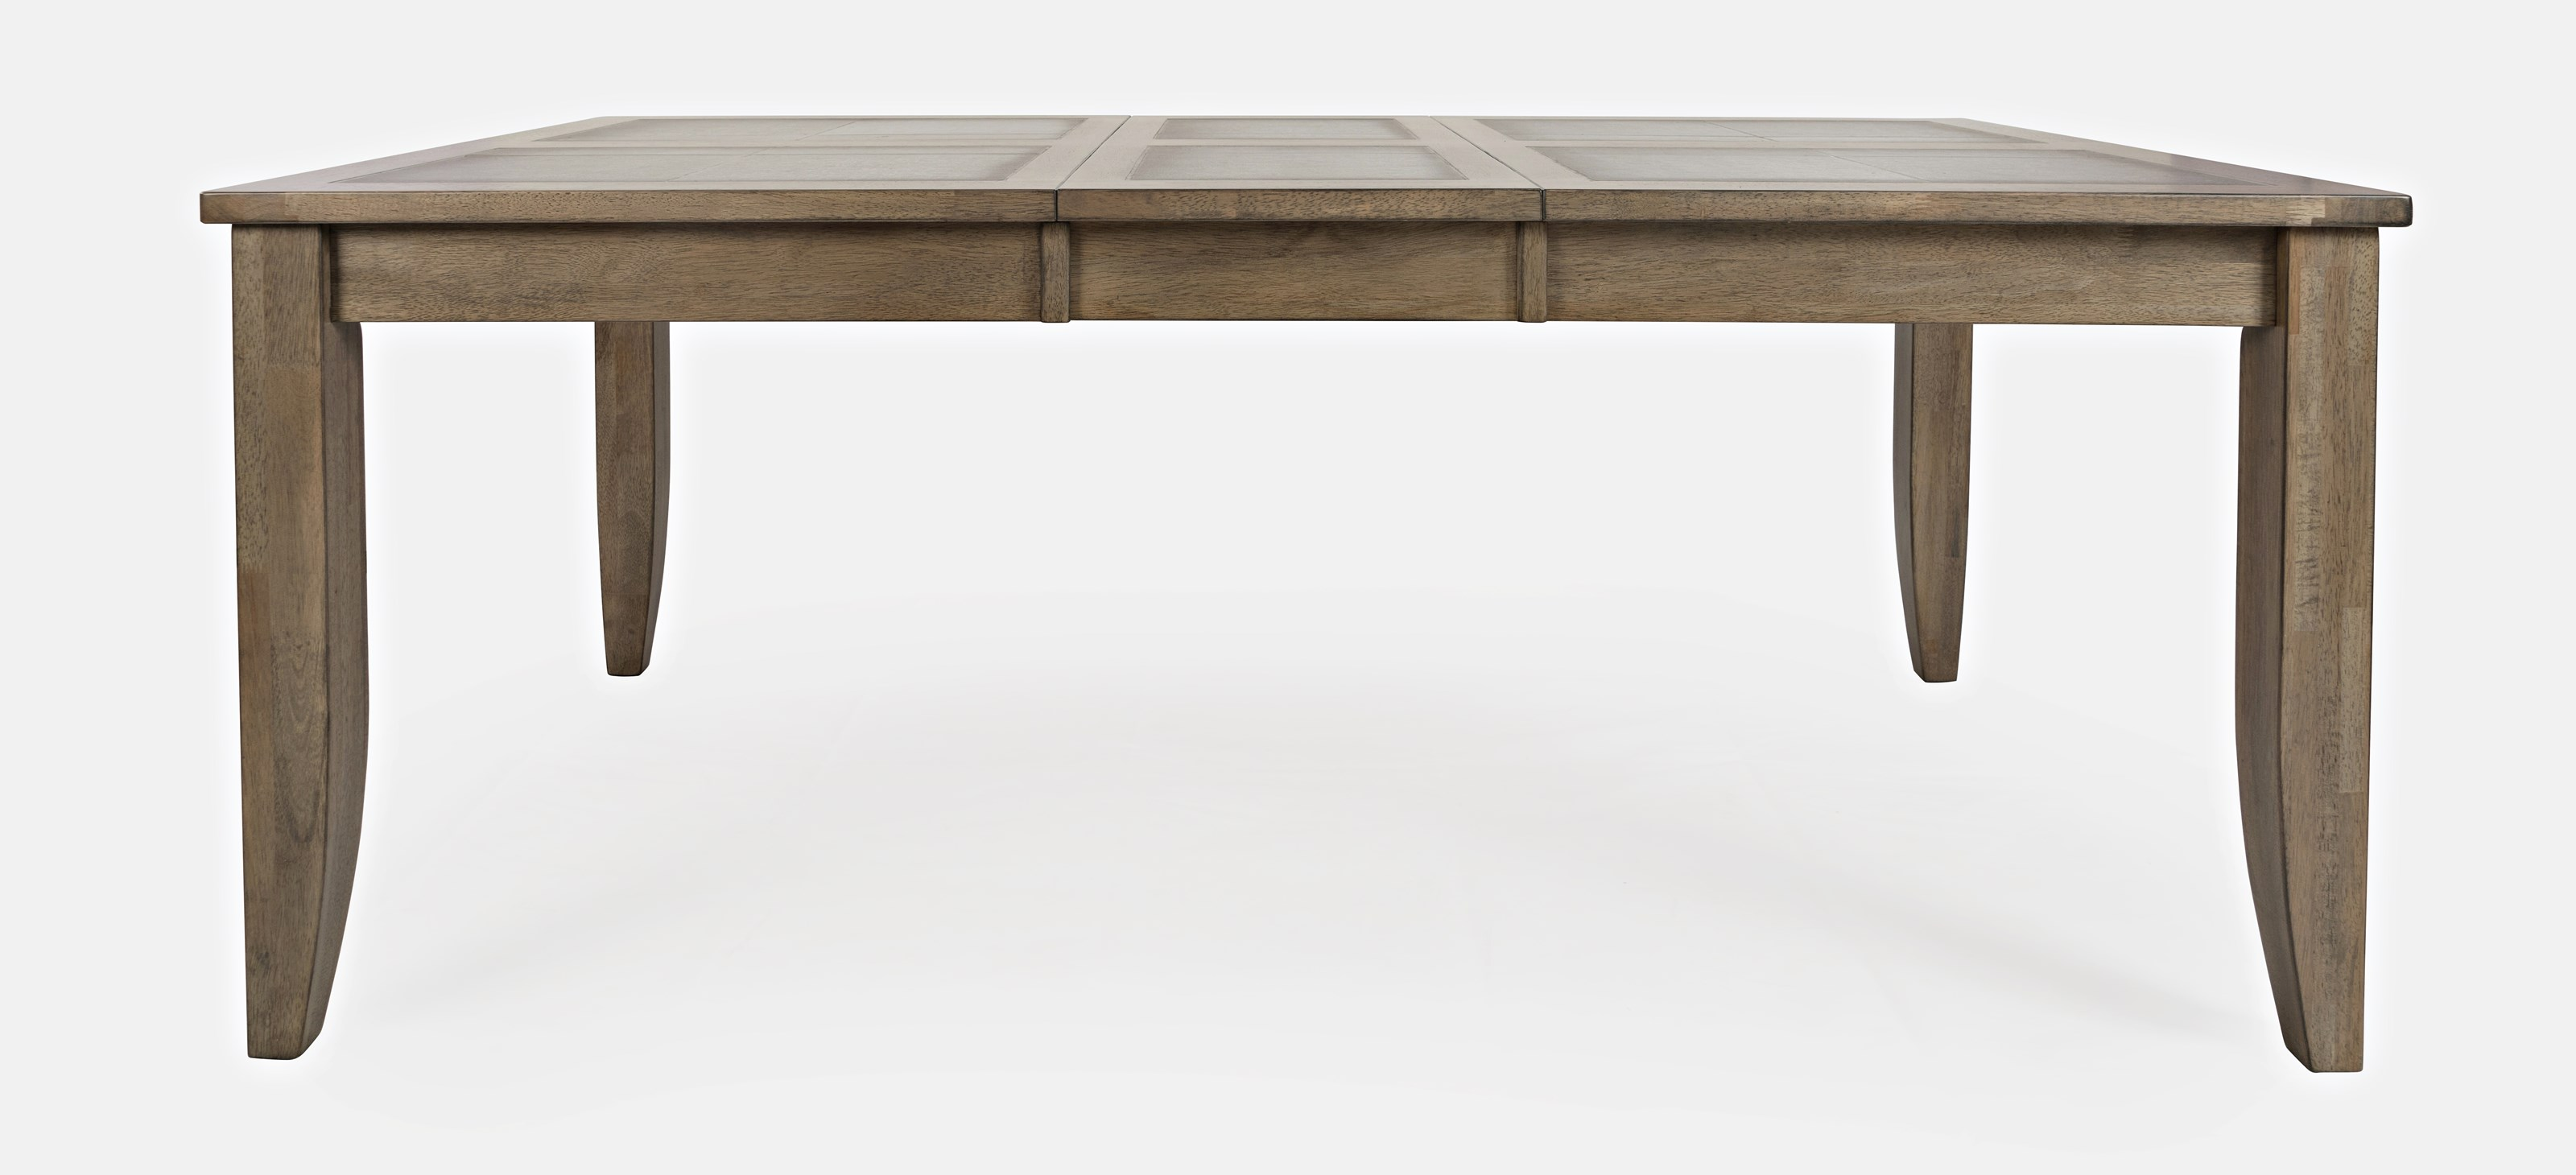 Extension Tile Top Dining Table